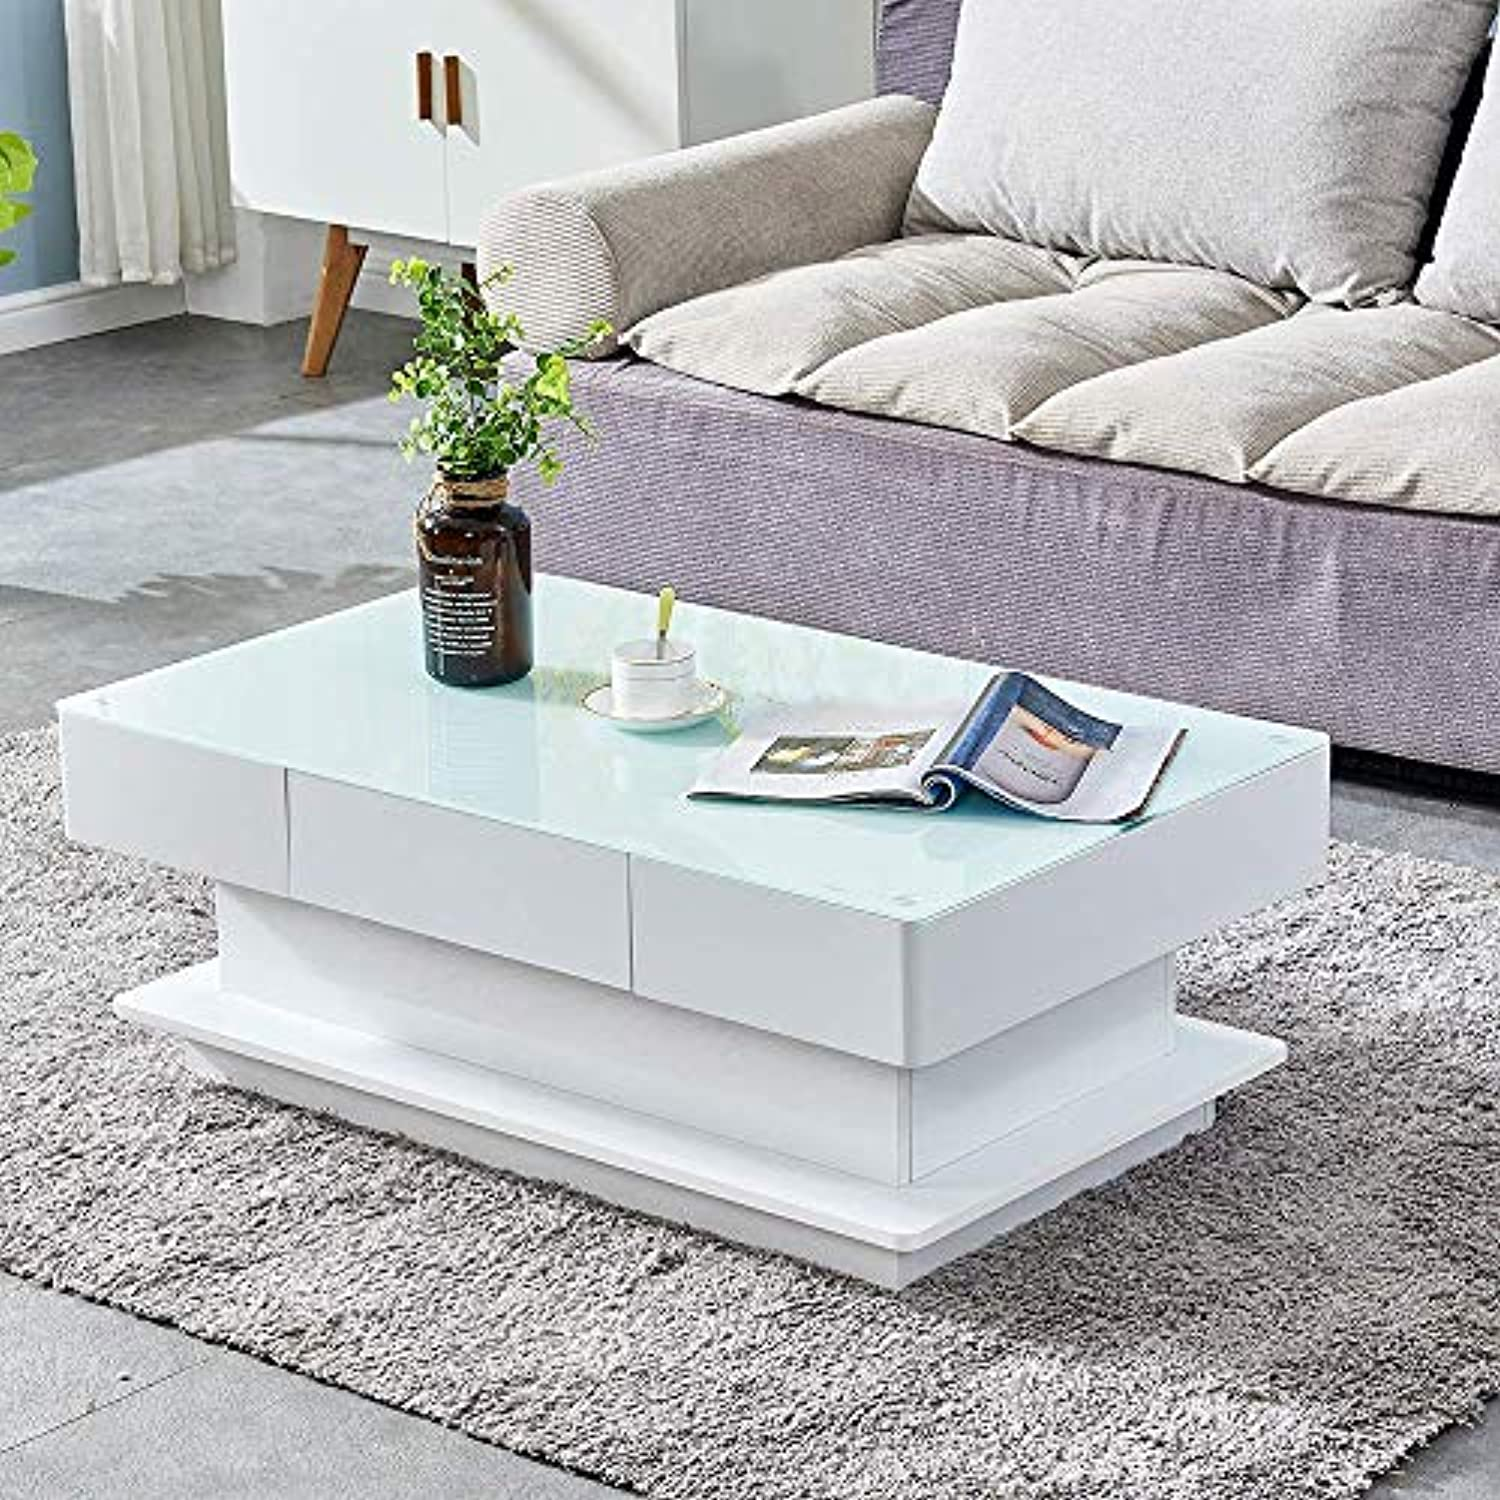 table basse rectangulaire blanche